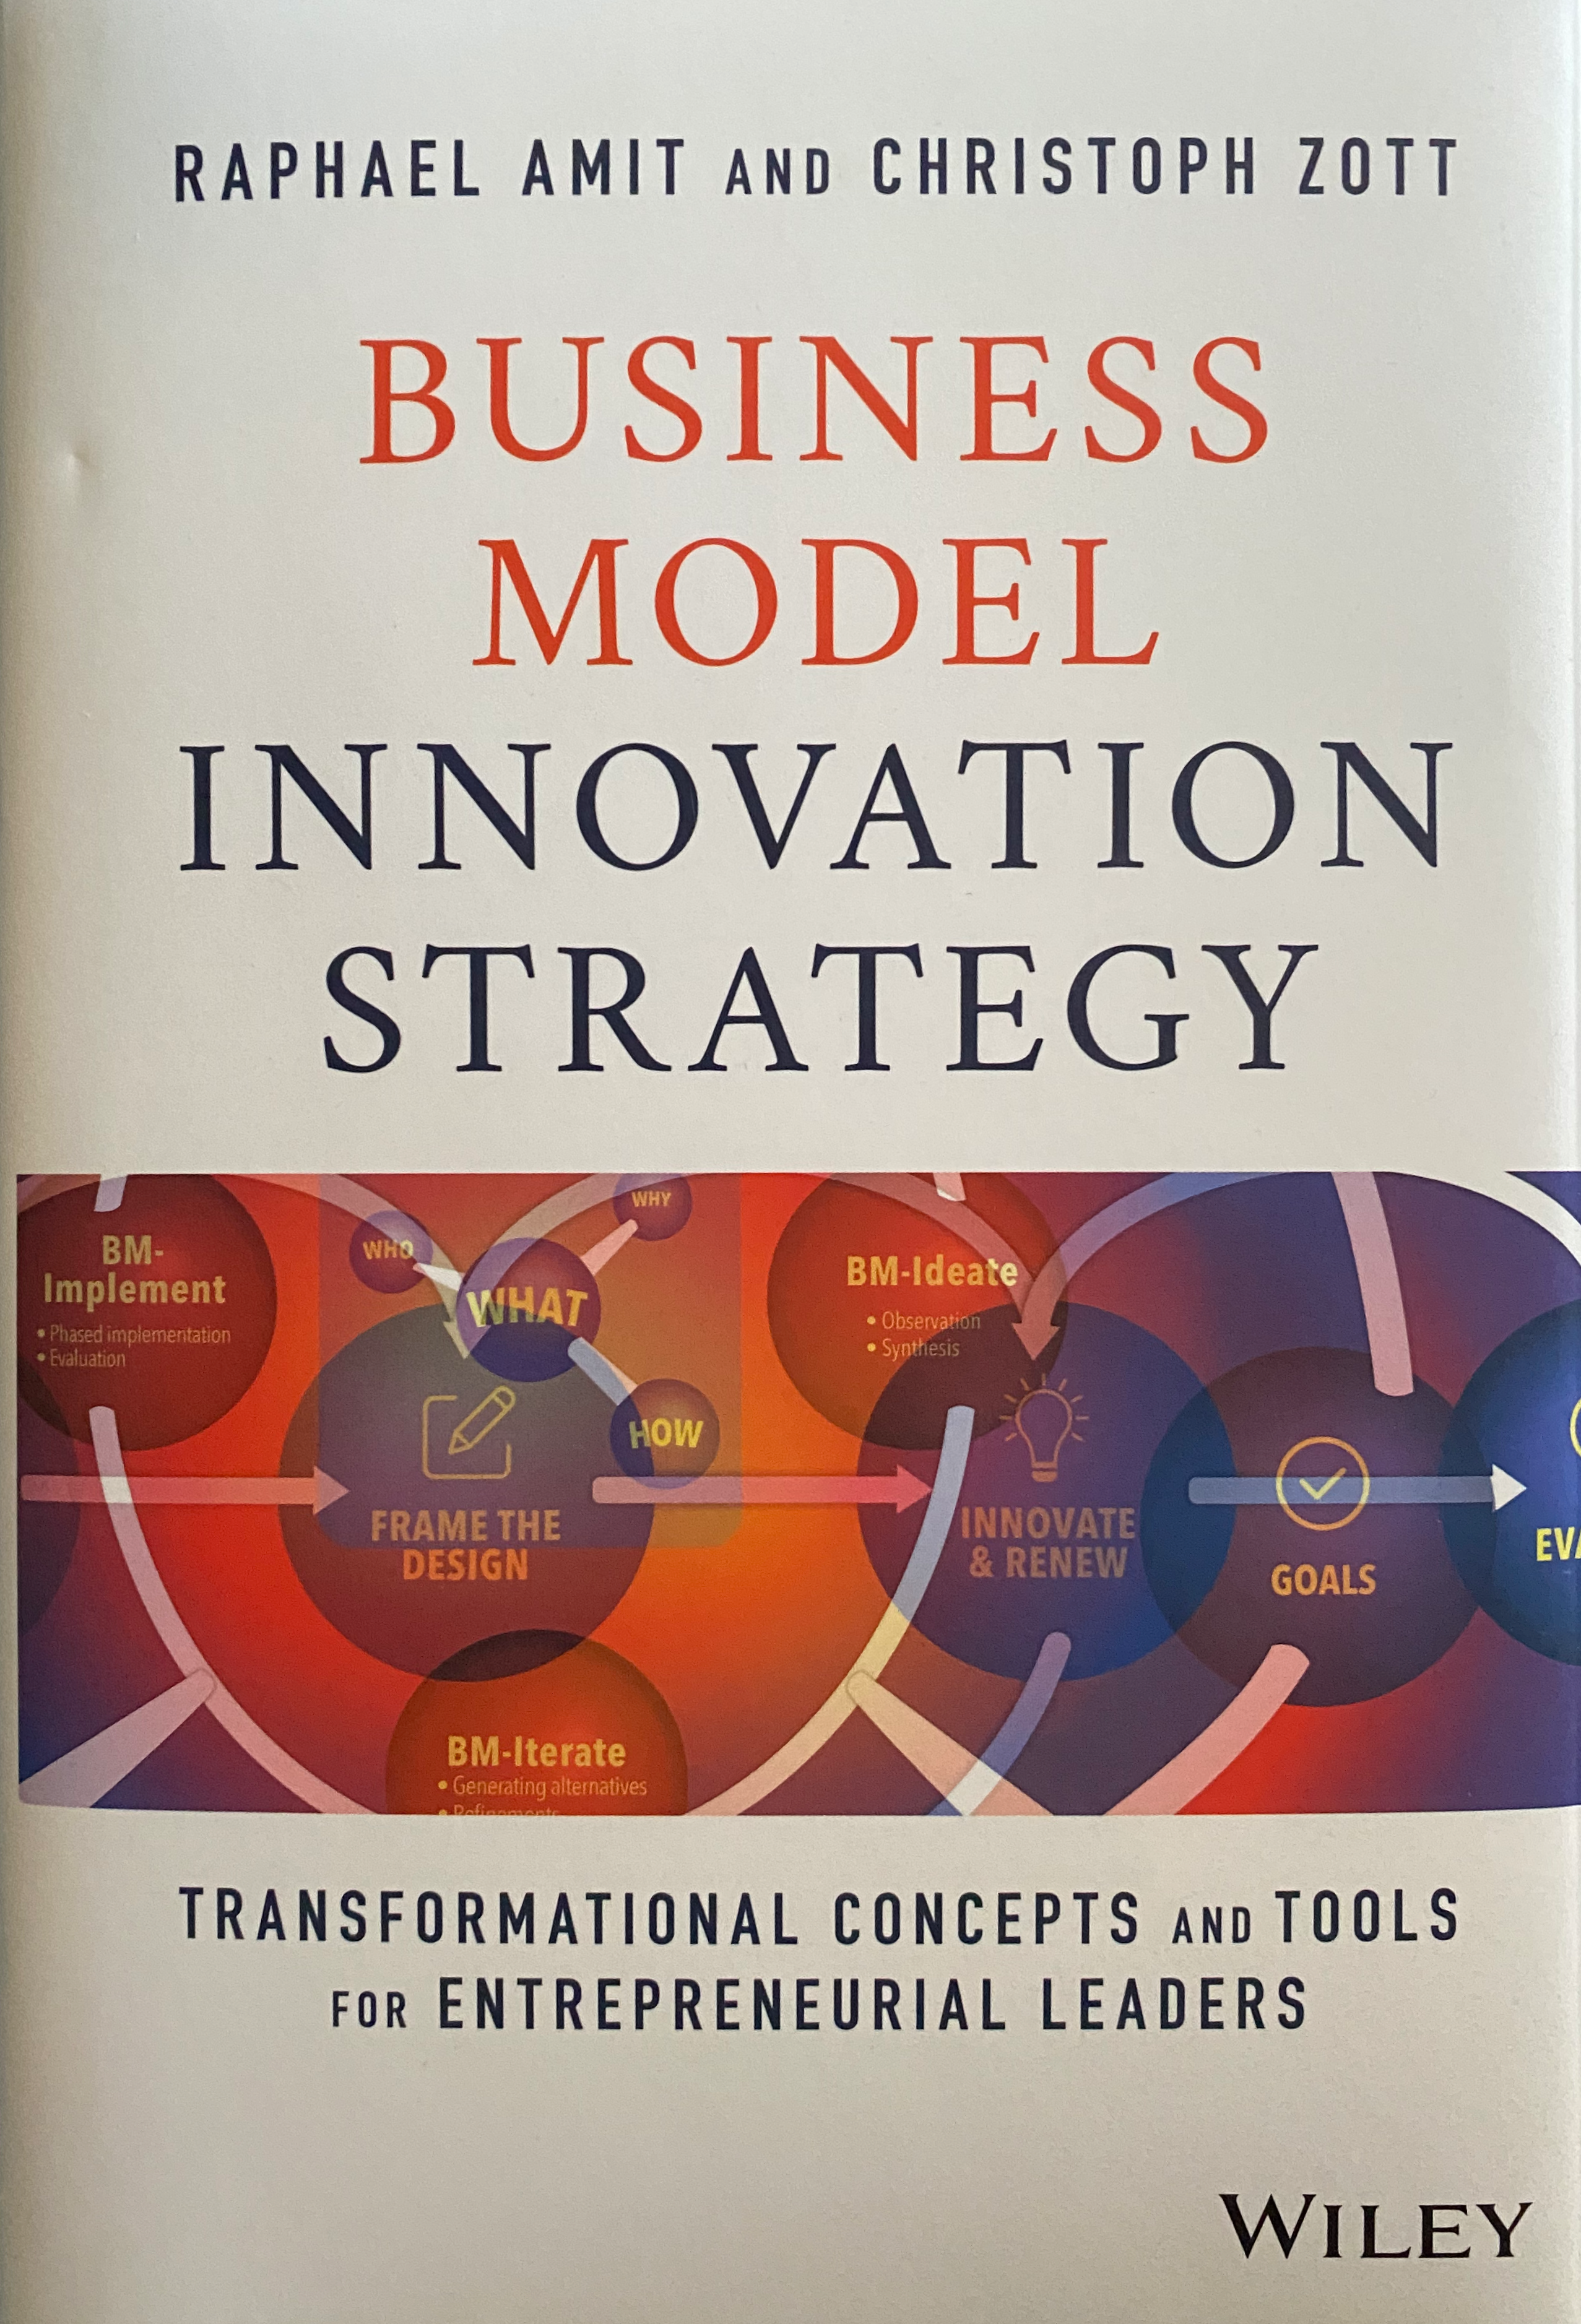 business-model-innovation-strategy-book-cover